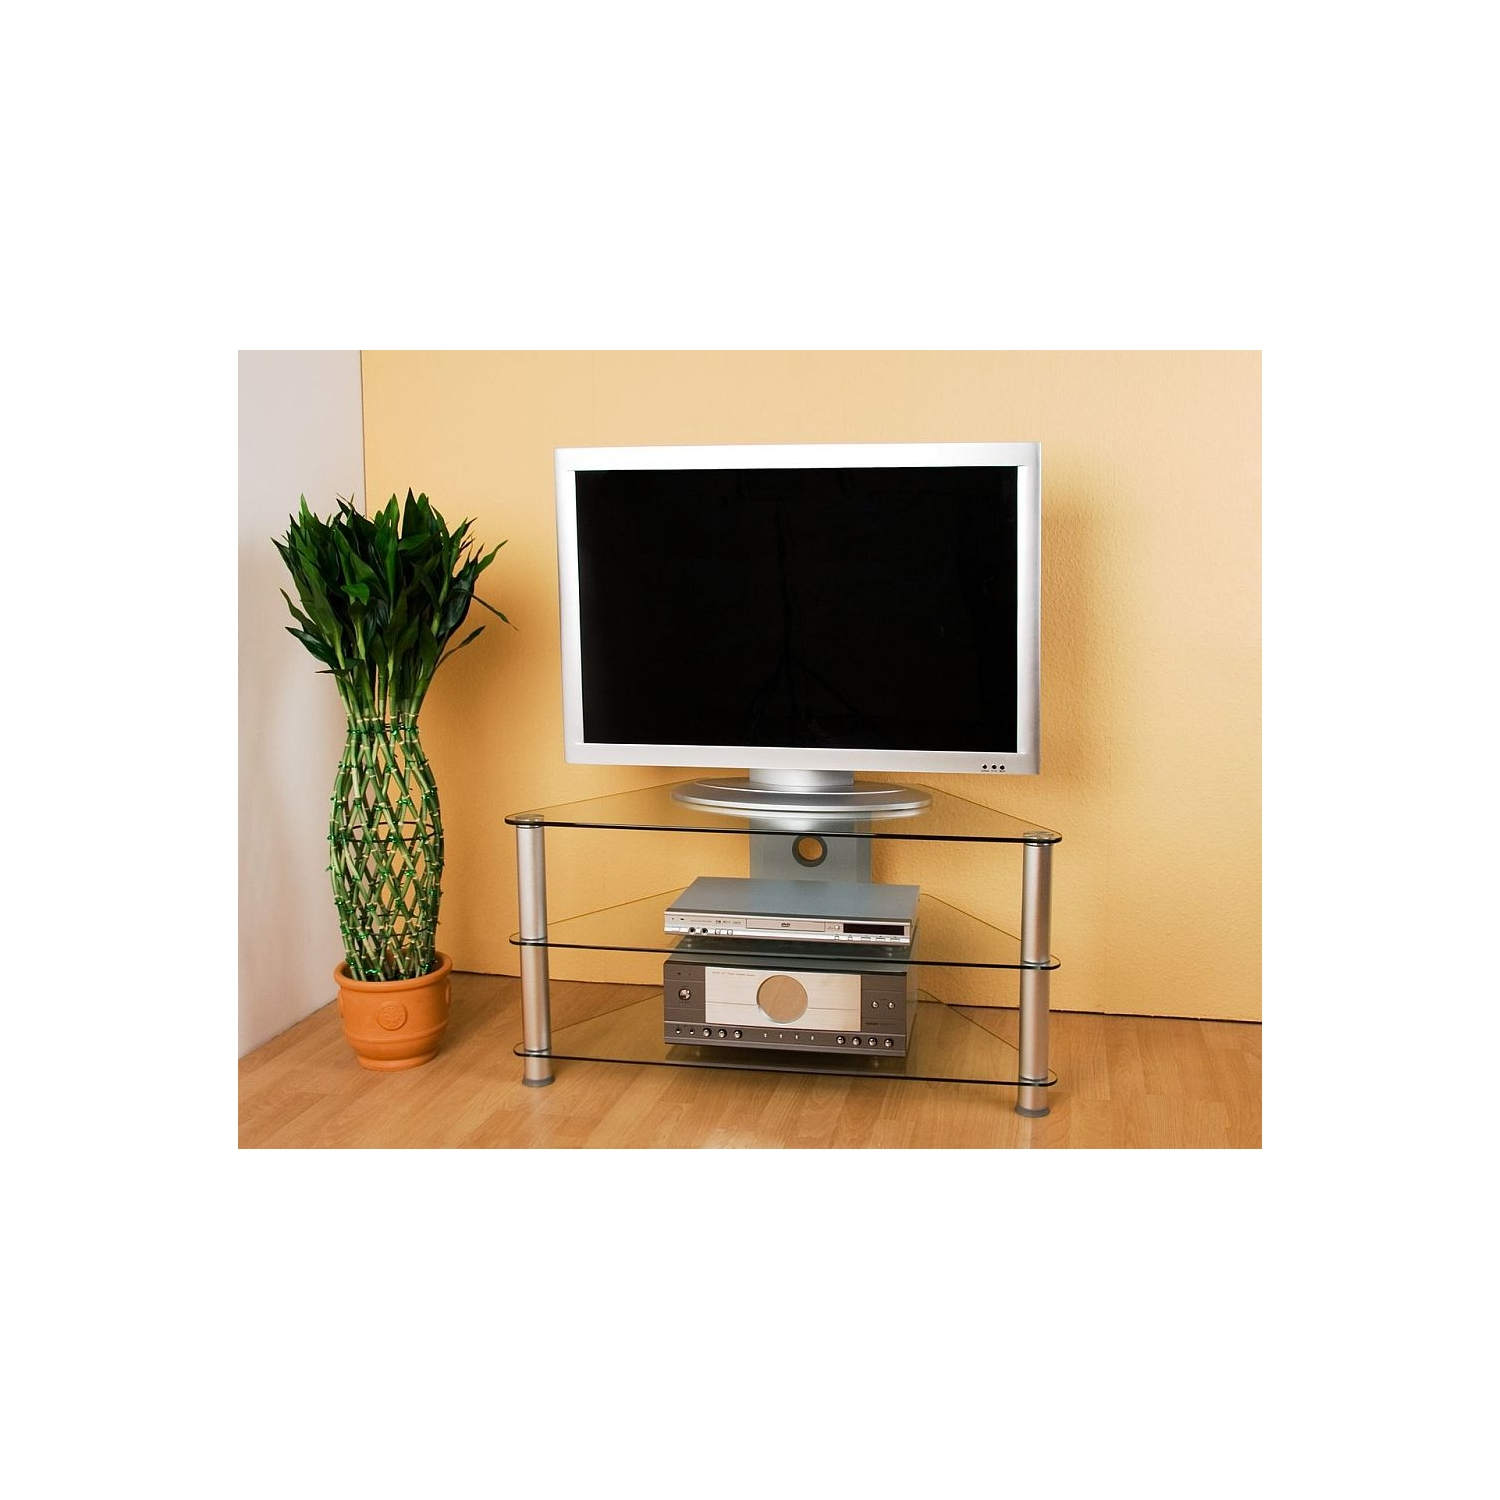 alu glas tv rack hifi schrank regal fernsehtisch glas ebay. Black Bedroom Furniture Sets. Home Design Ideas